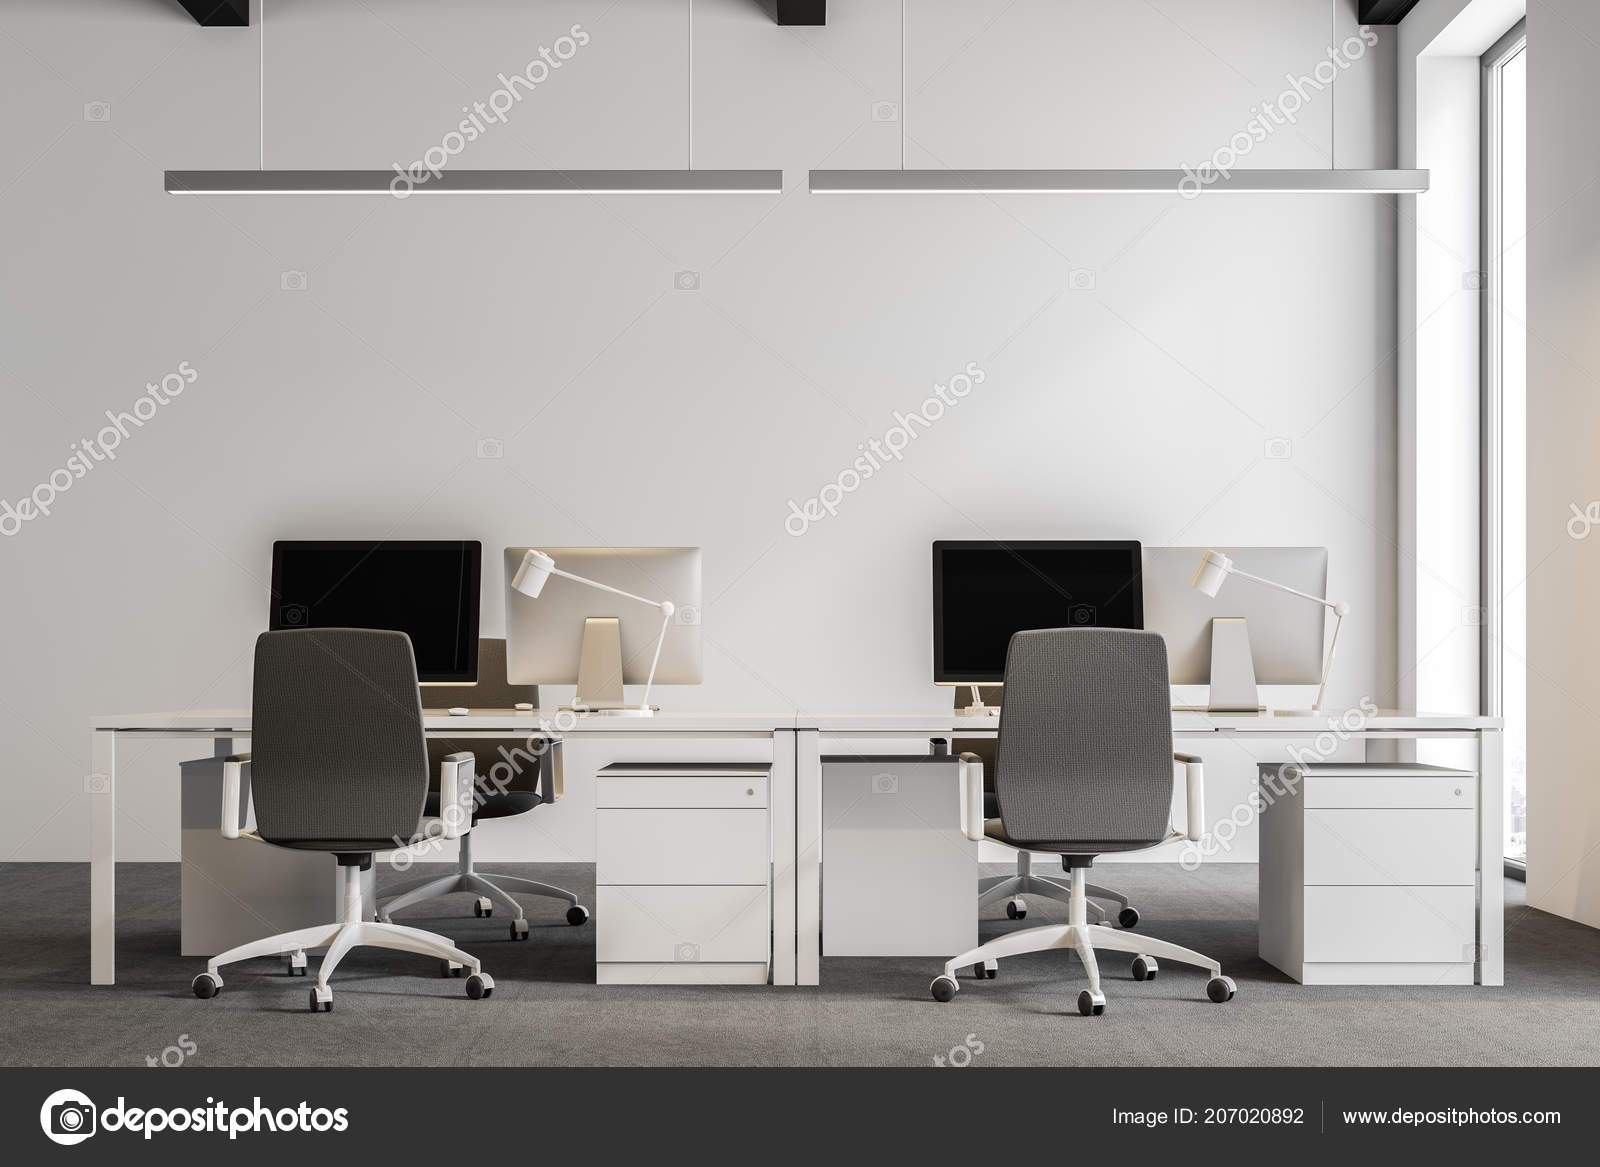 Close up of a modern international company office with white walls, and  computer desks standing in rows. Industrial style. 50d rendering mock up